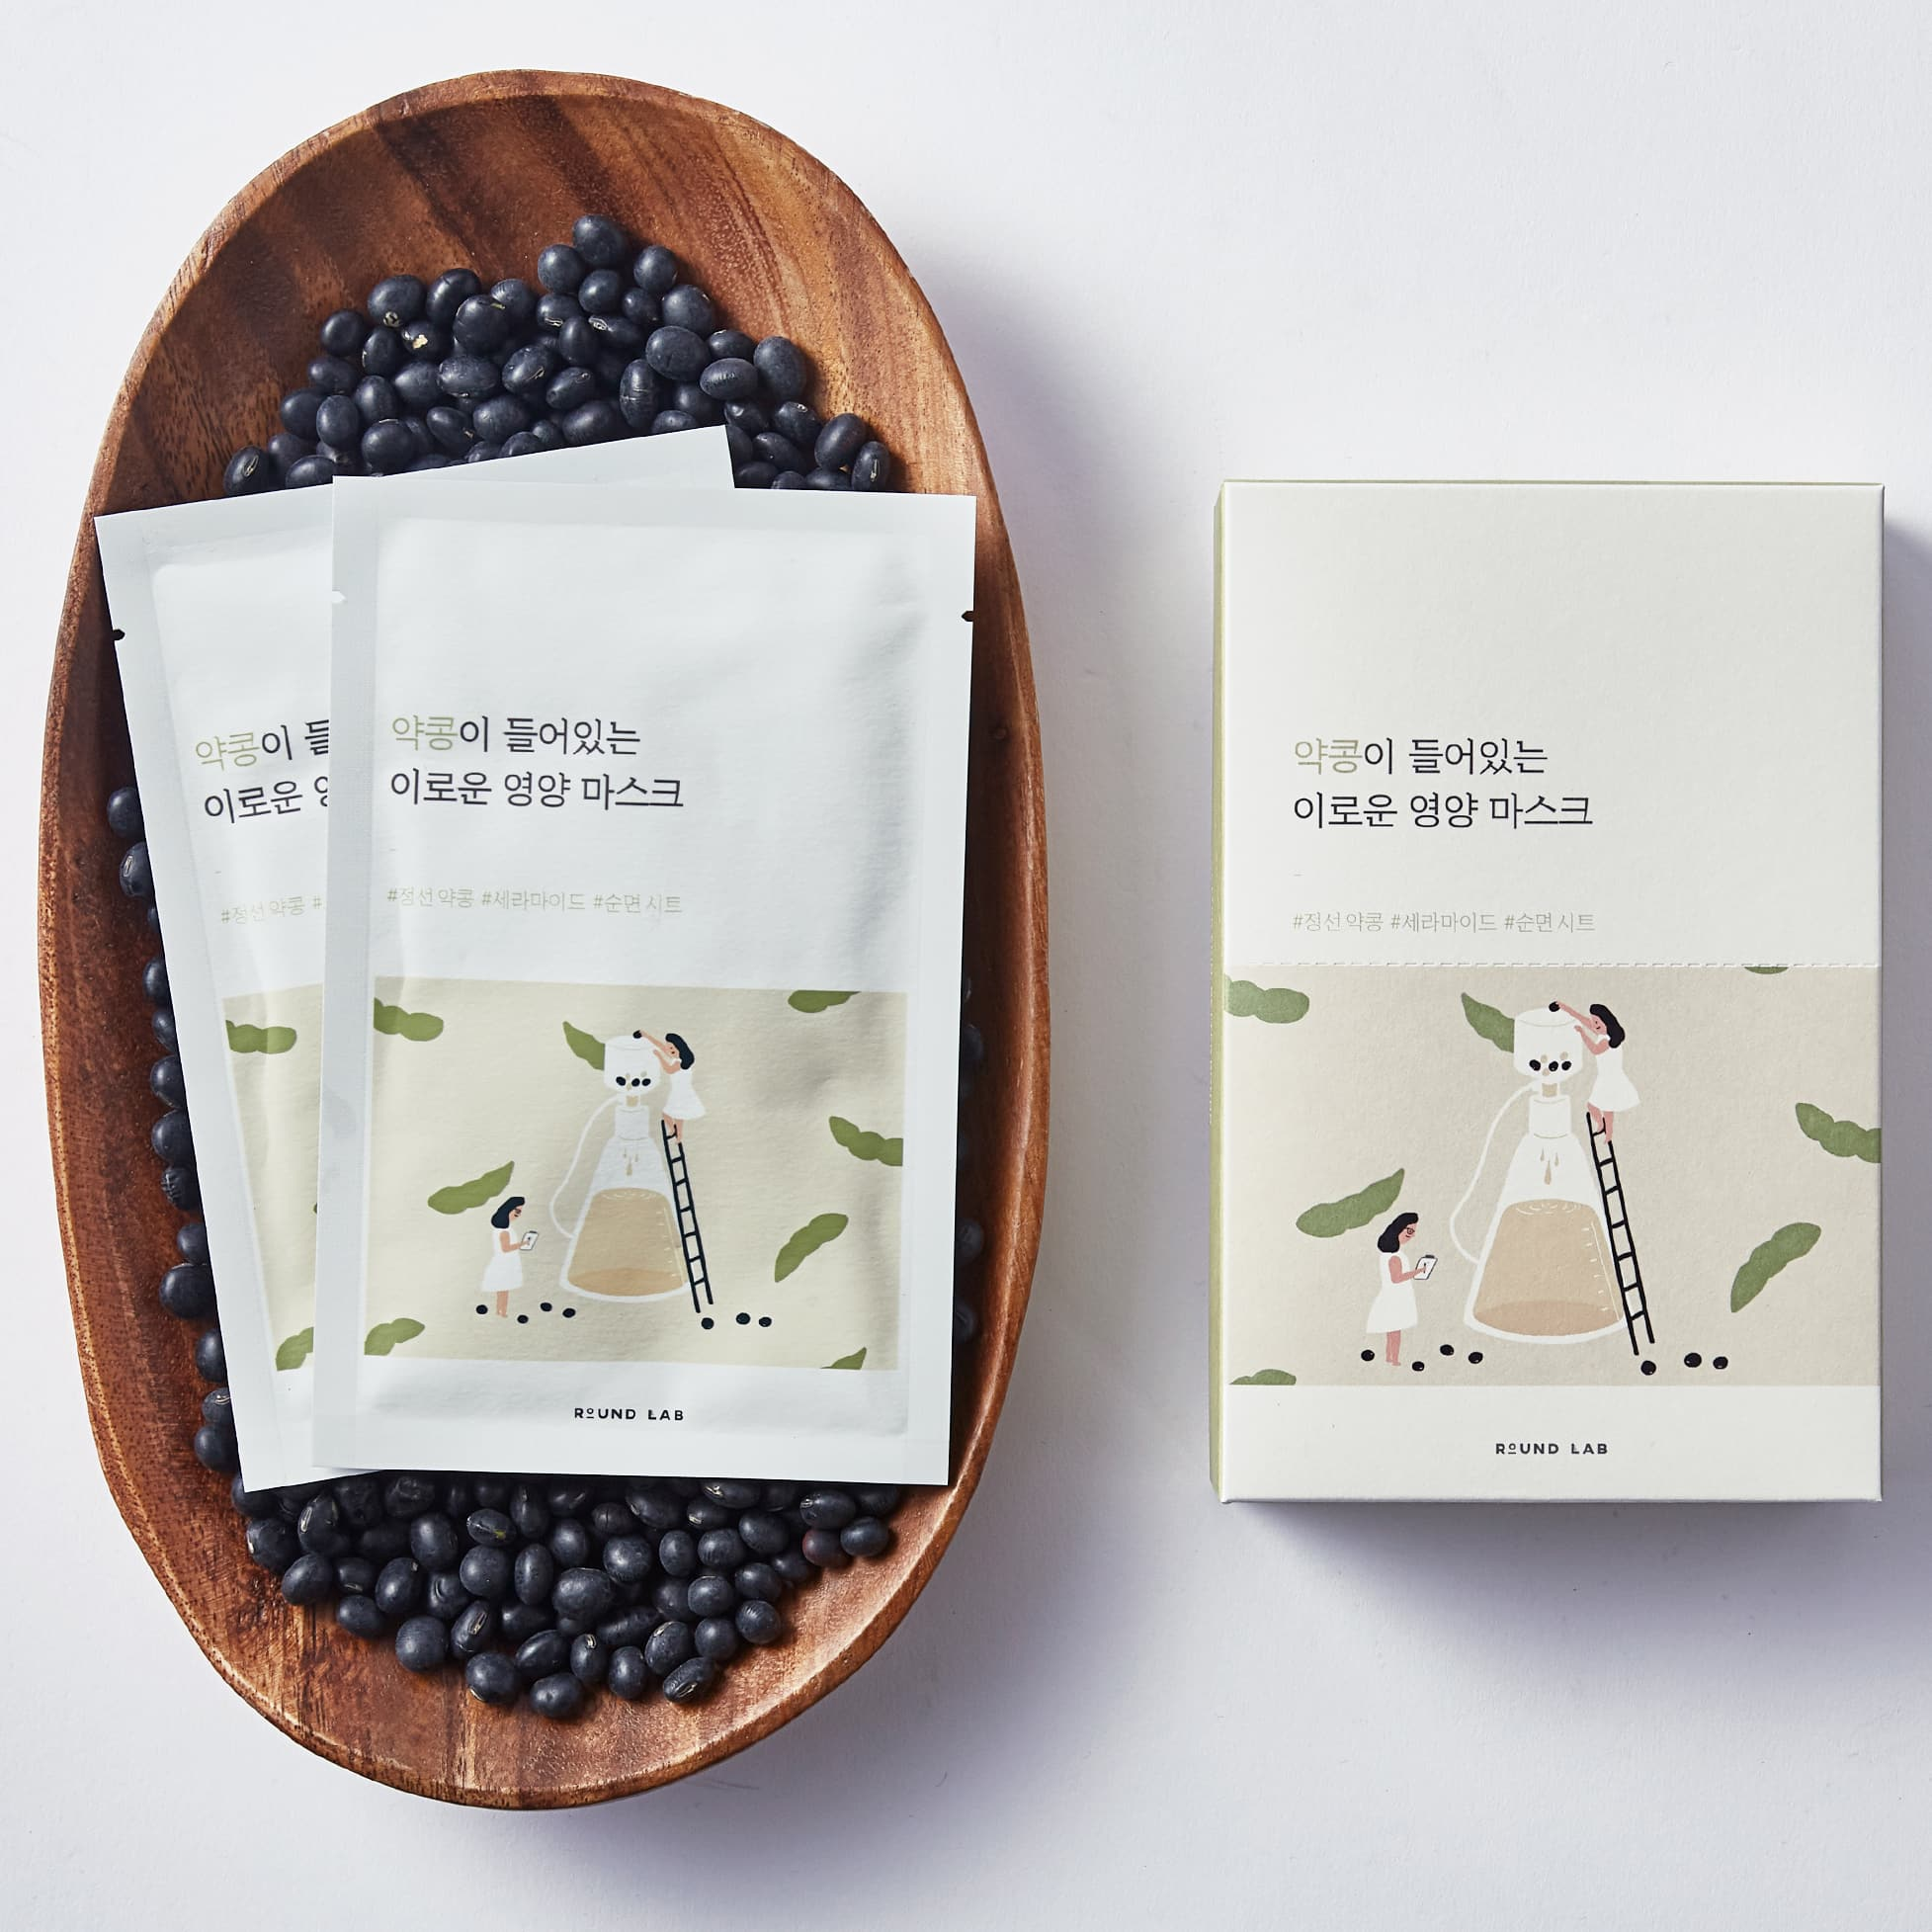 Round Lab Soybean Nourishing Mask 4.jpg